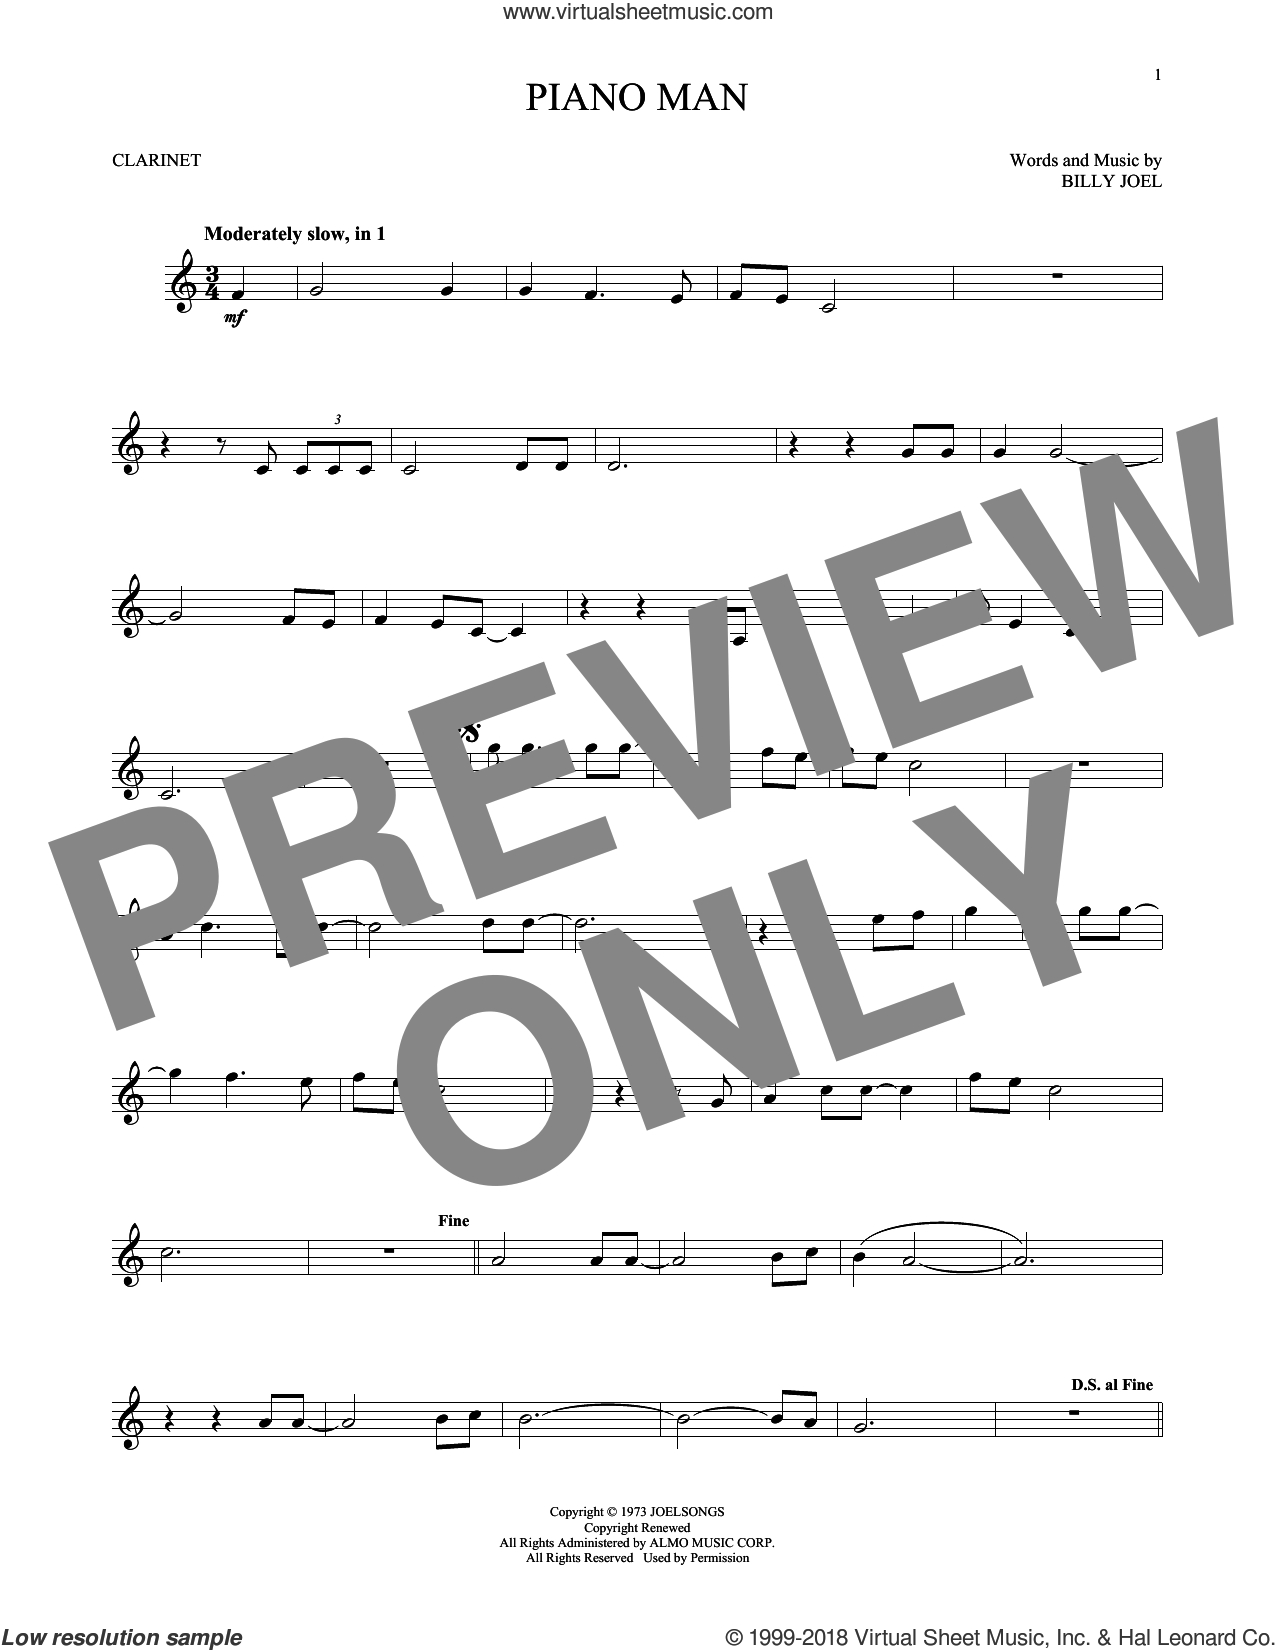 Piano Man sheet music for clarinet solo by Billy Joel, intermediate